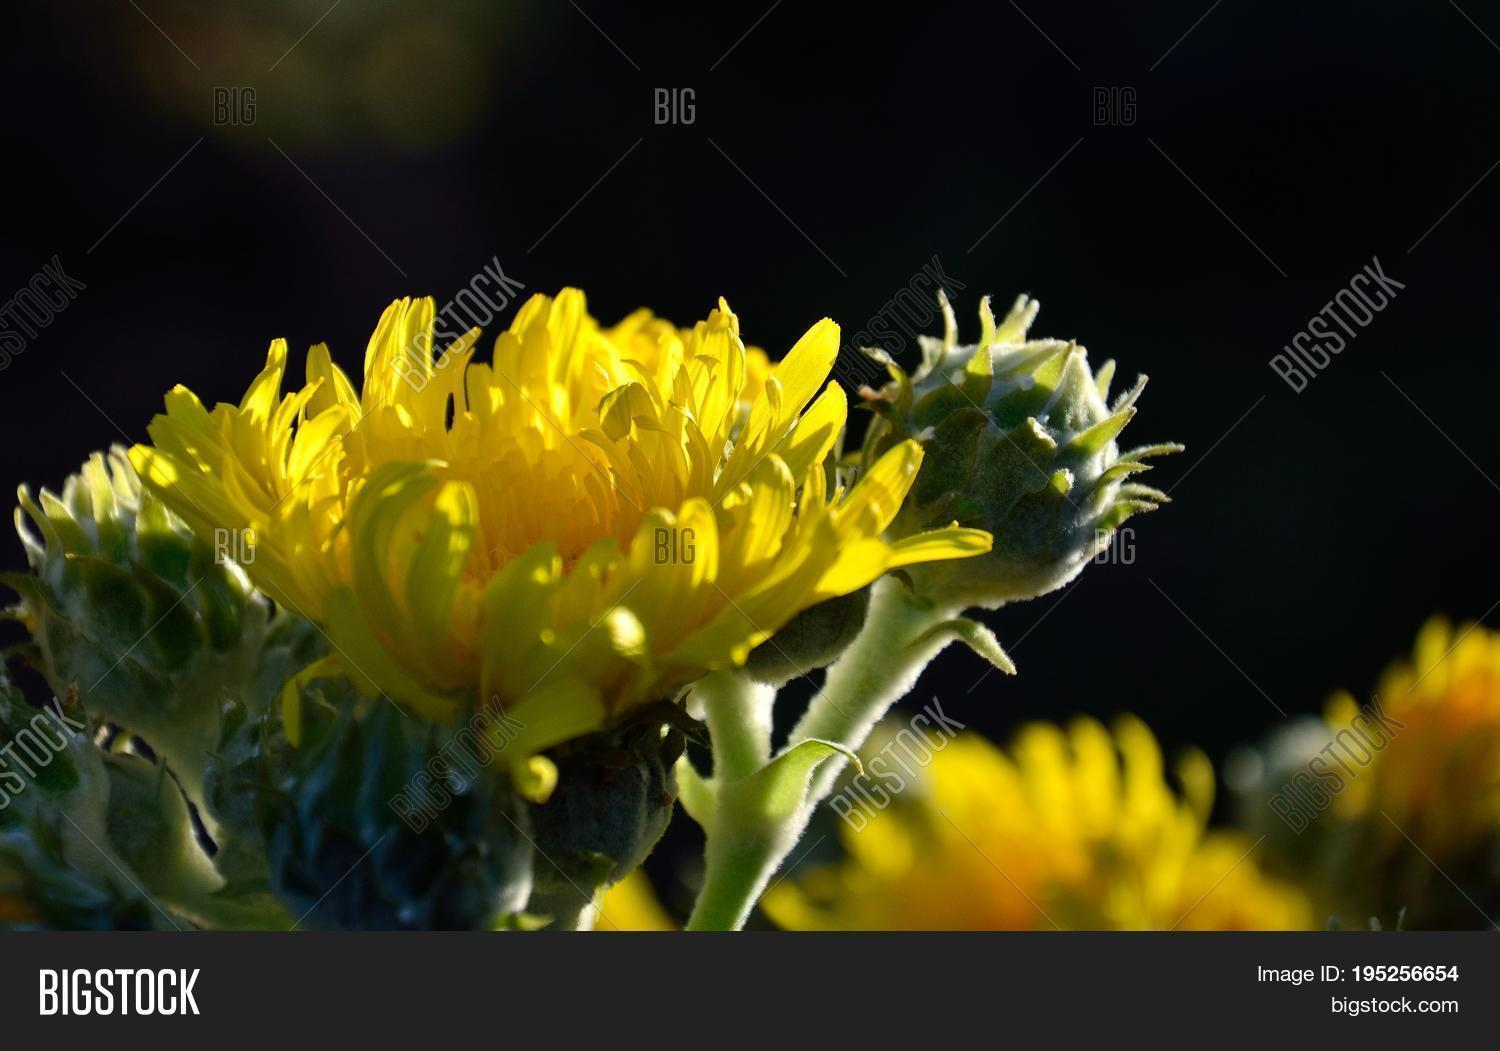 Bright Yellow Flowers Image Photo Free Trial Bigstock